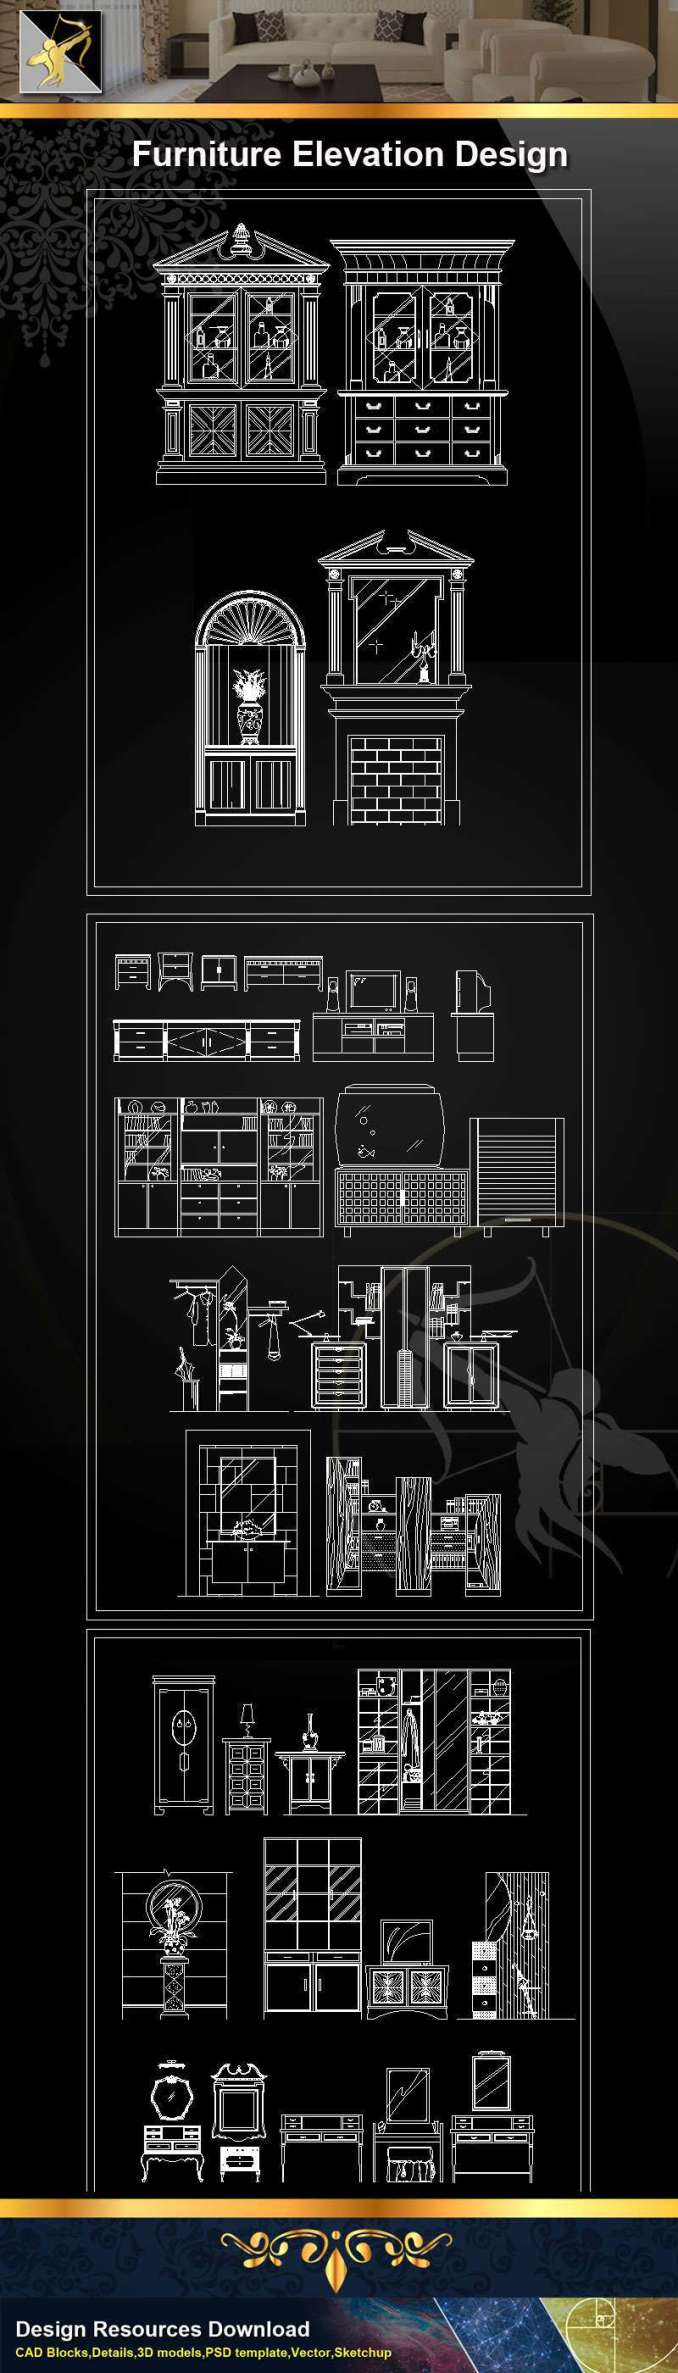 ★【Furniture Elevation Design】@Autocad Blocks,Drawings,CAD Details,Elevation